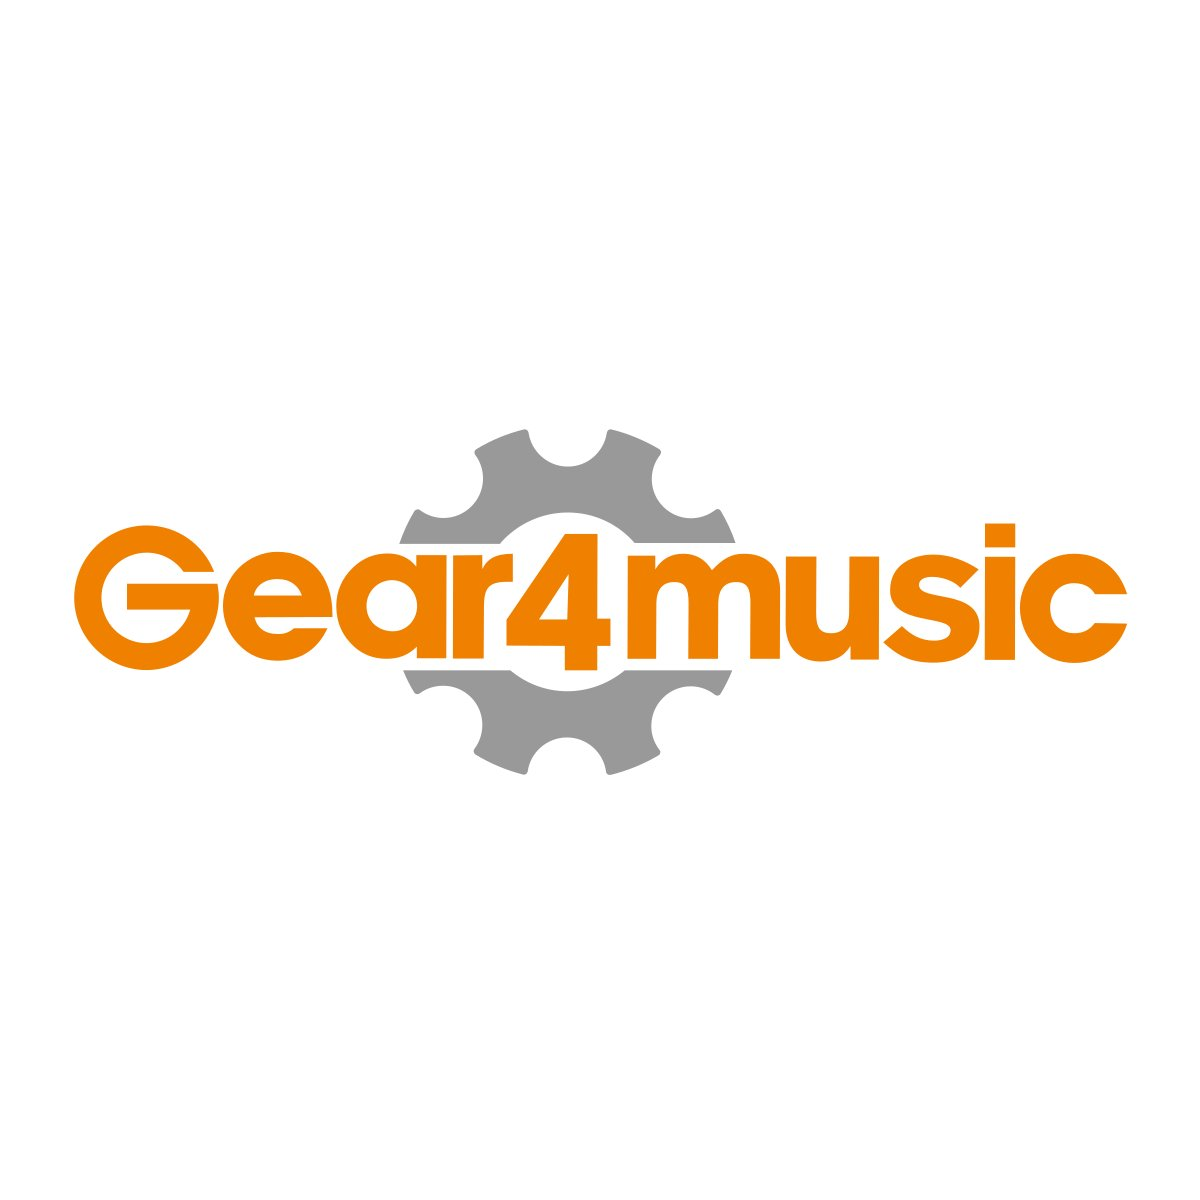 Deluxe Trompete von Gear4music, Gold